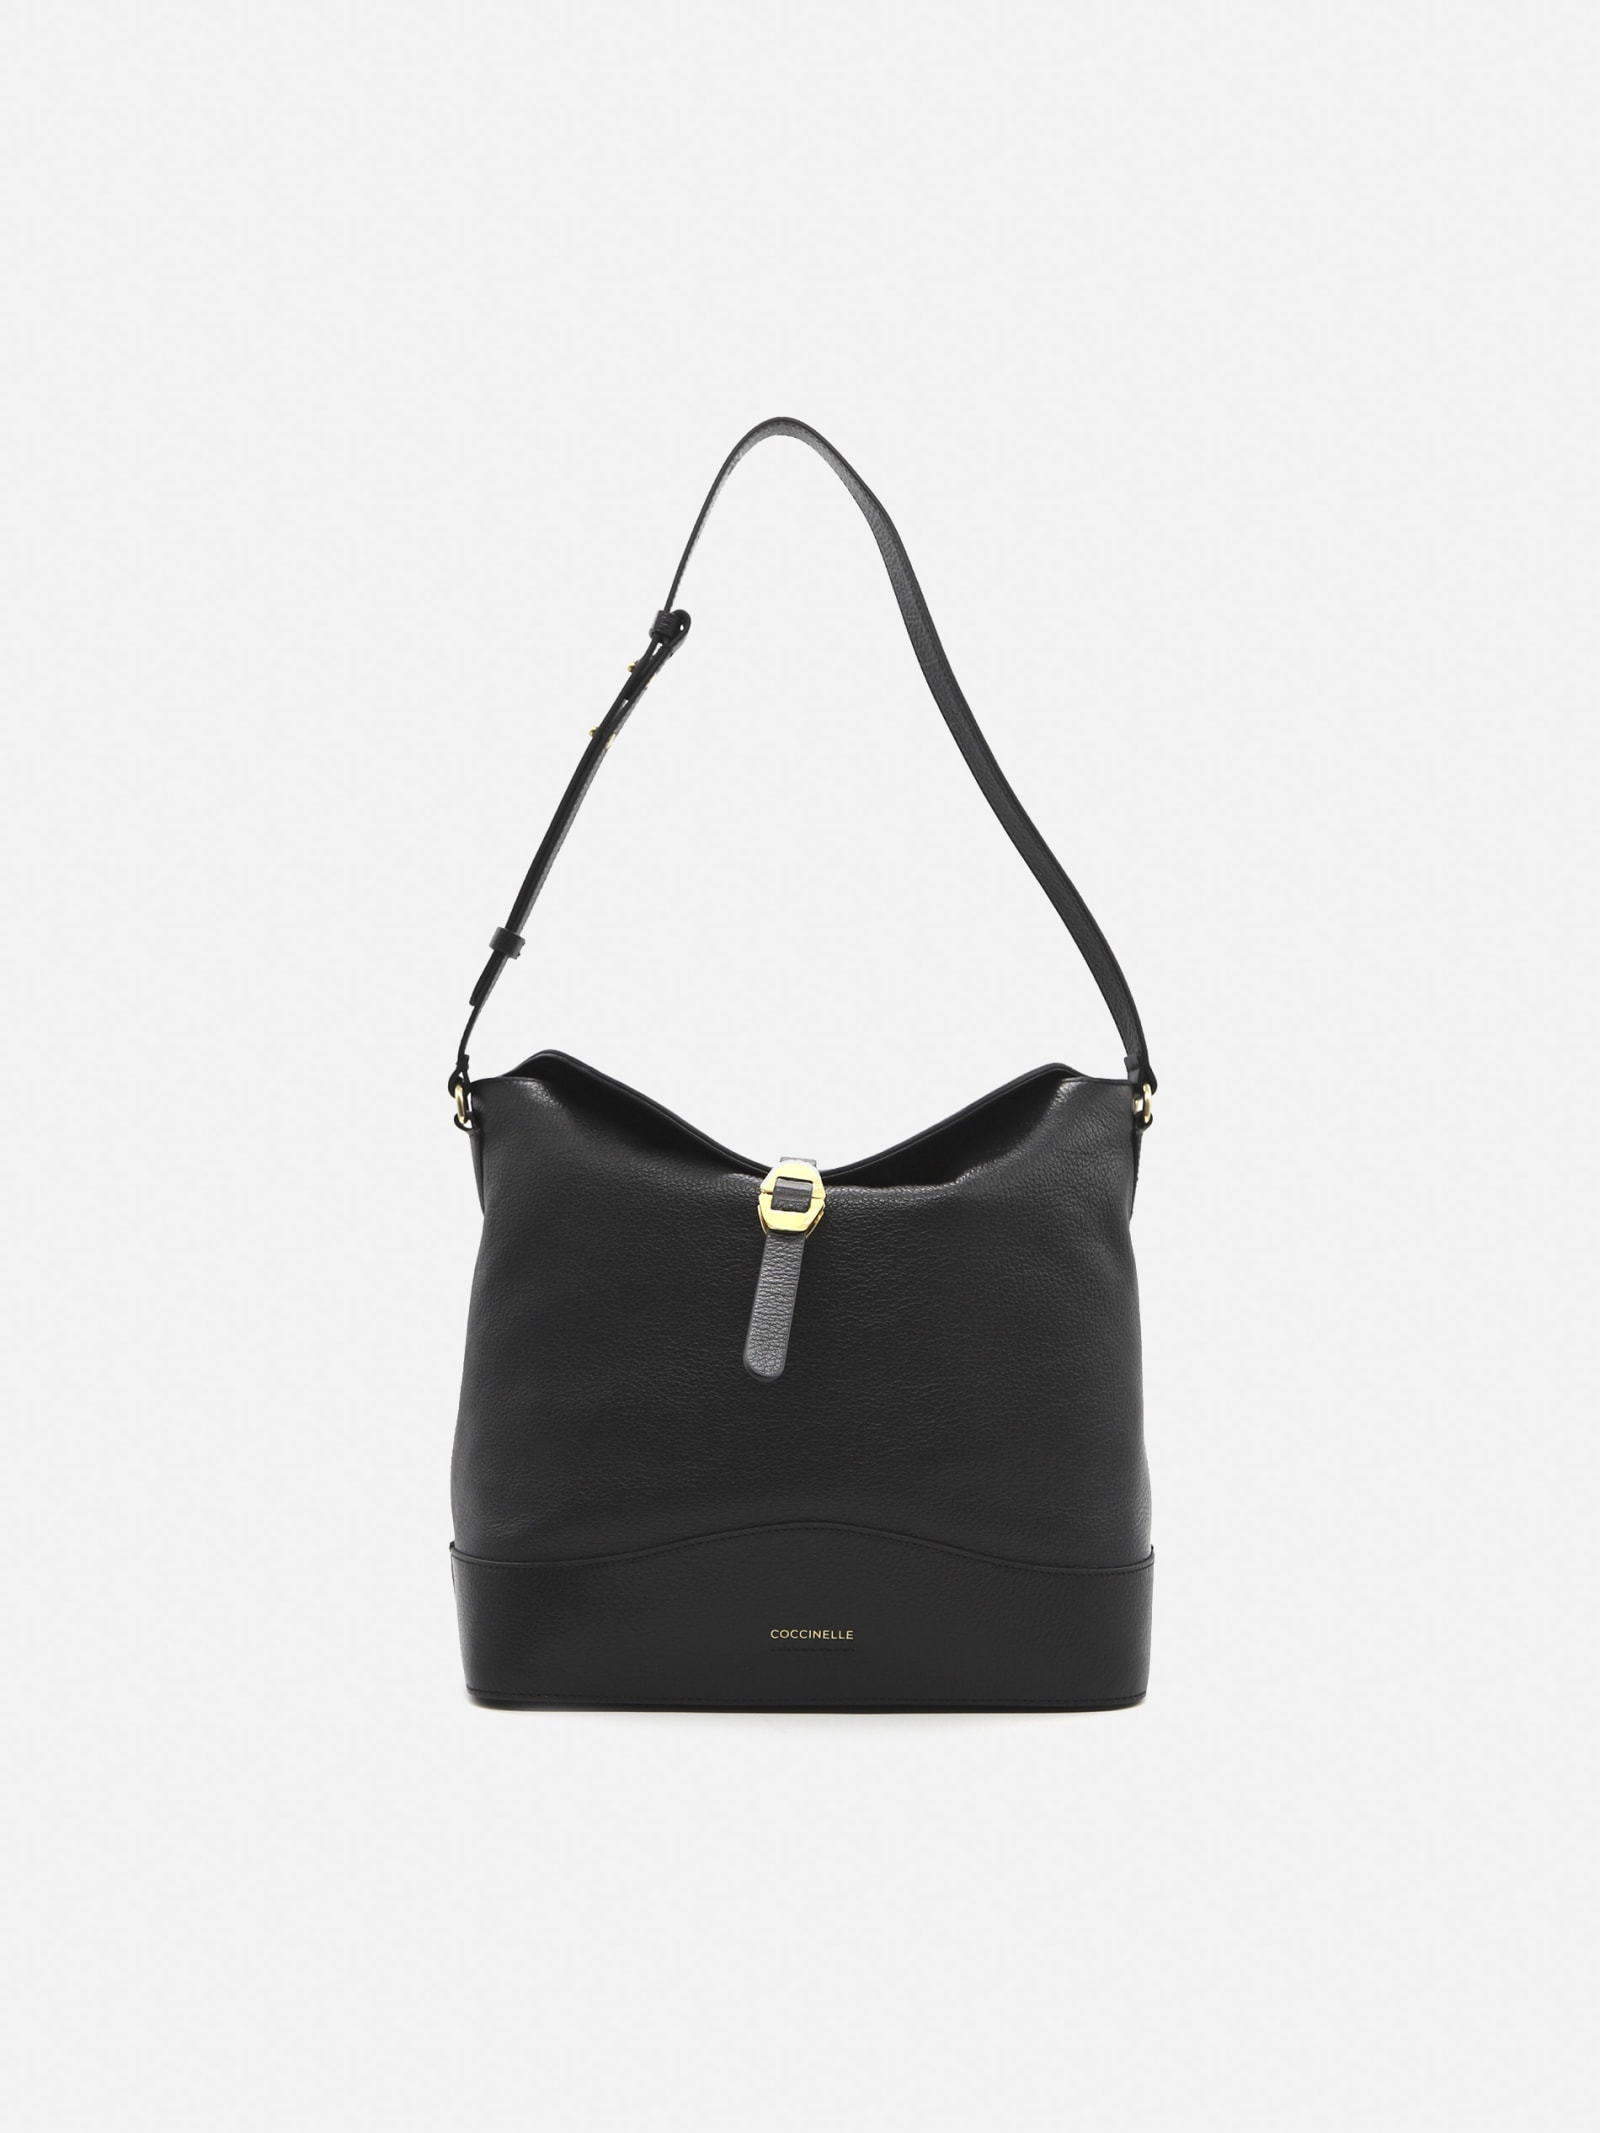 Josephine Bag In Grained Leather